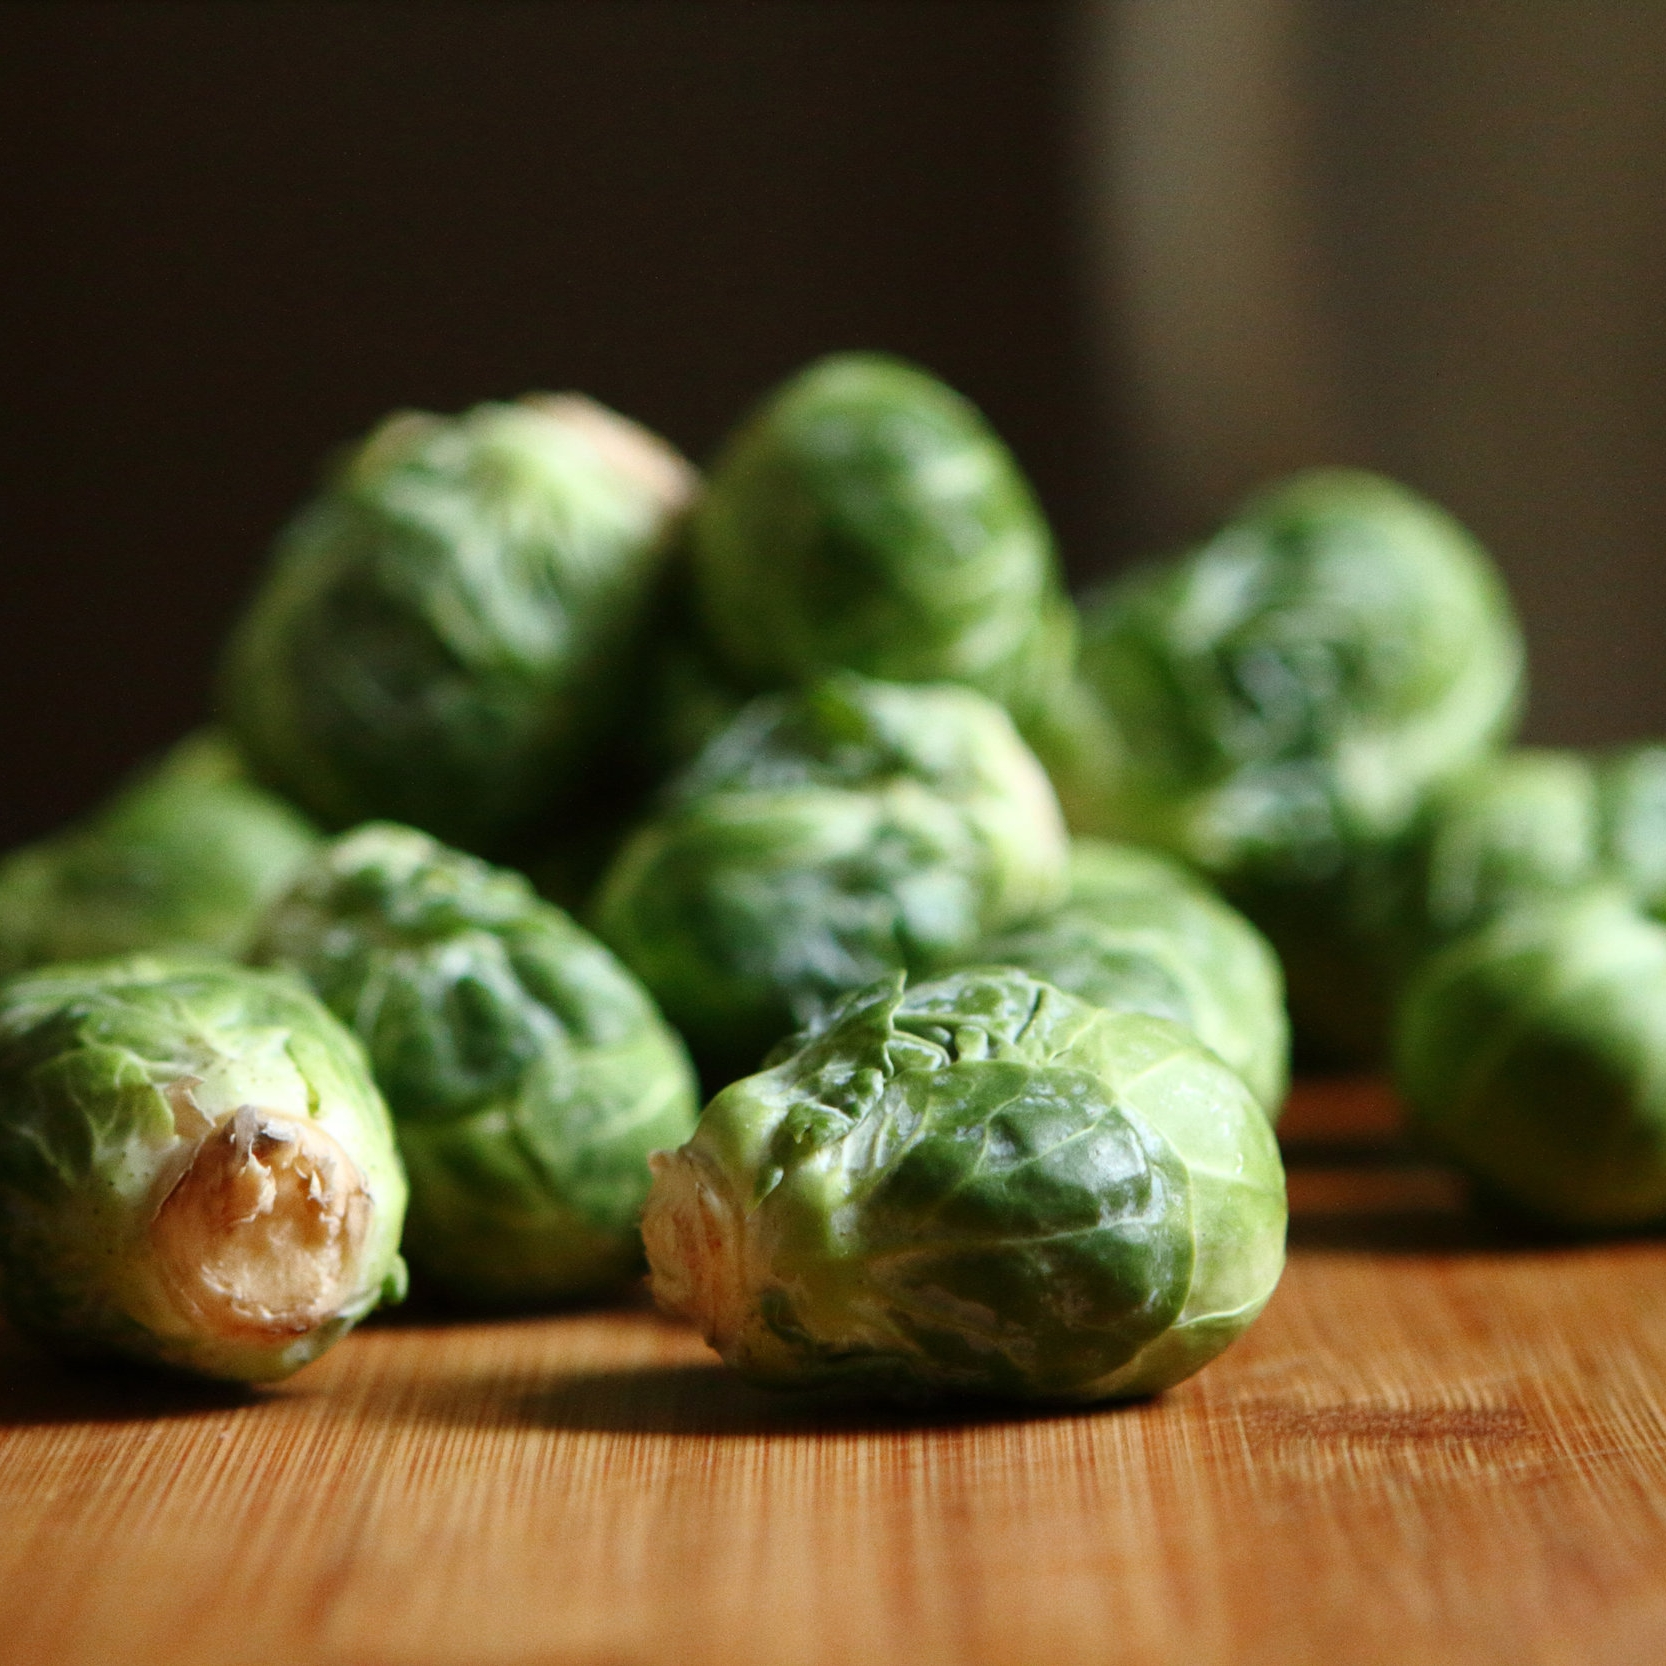 Brussels Sprouts    Healing Nutrient: Sulforaphane    Boosts Body's Detoxification Enzymes     Roasted Brussel Sprouts Recipe